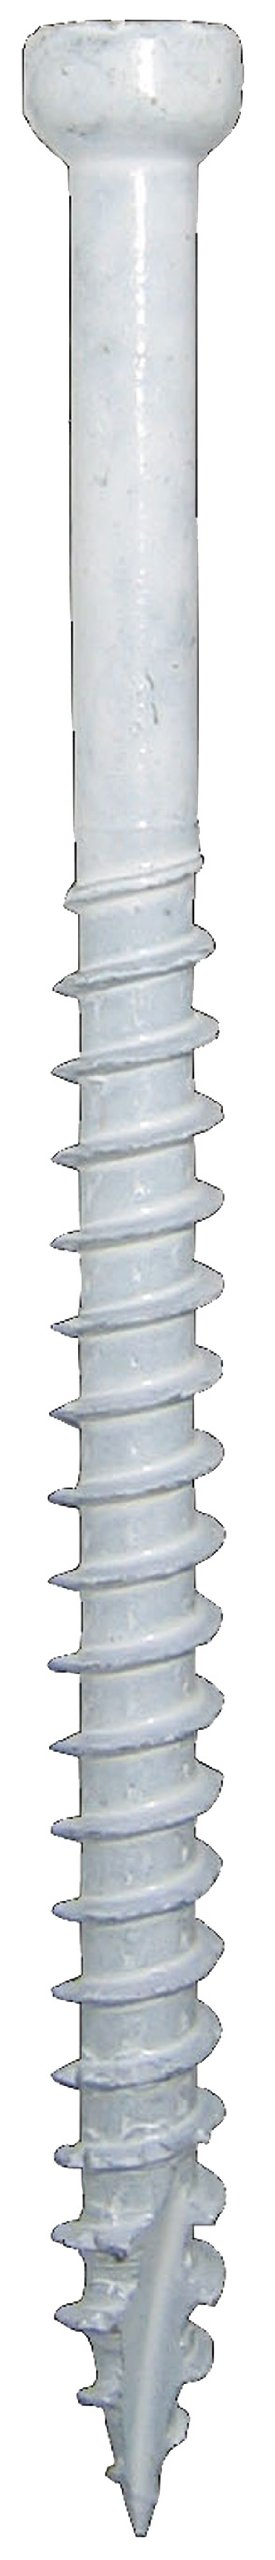 GRK 772691158284 White FIN/TRIM Number-8 by 2-Inch Bulk Box Screw, 4500-Piece